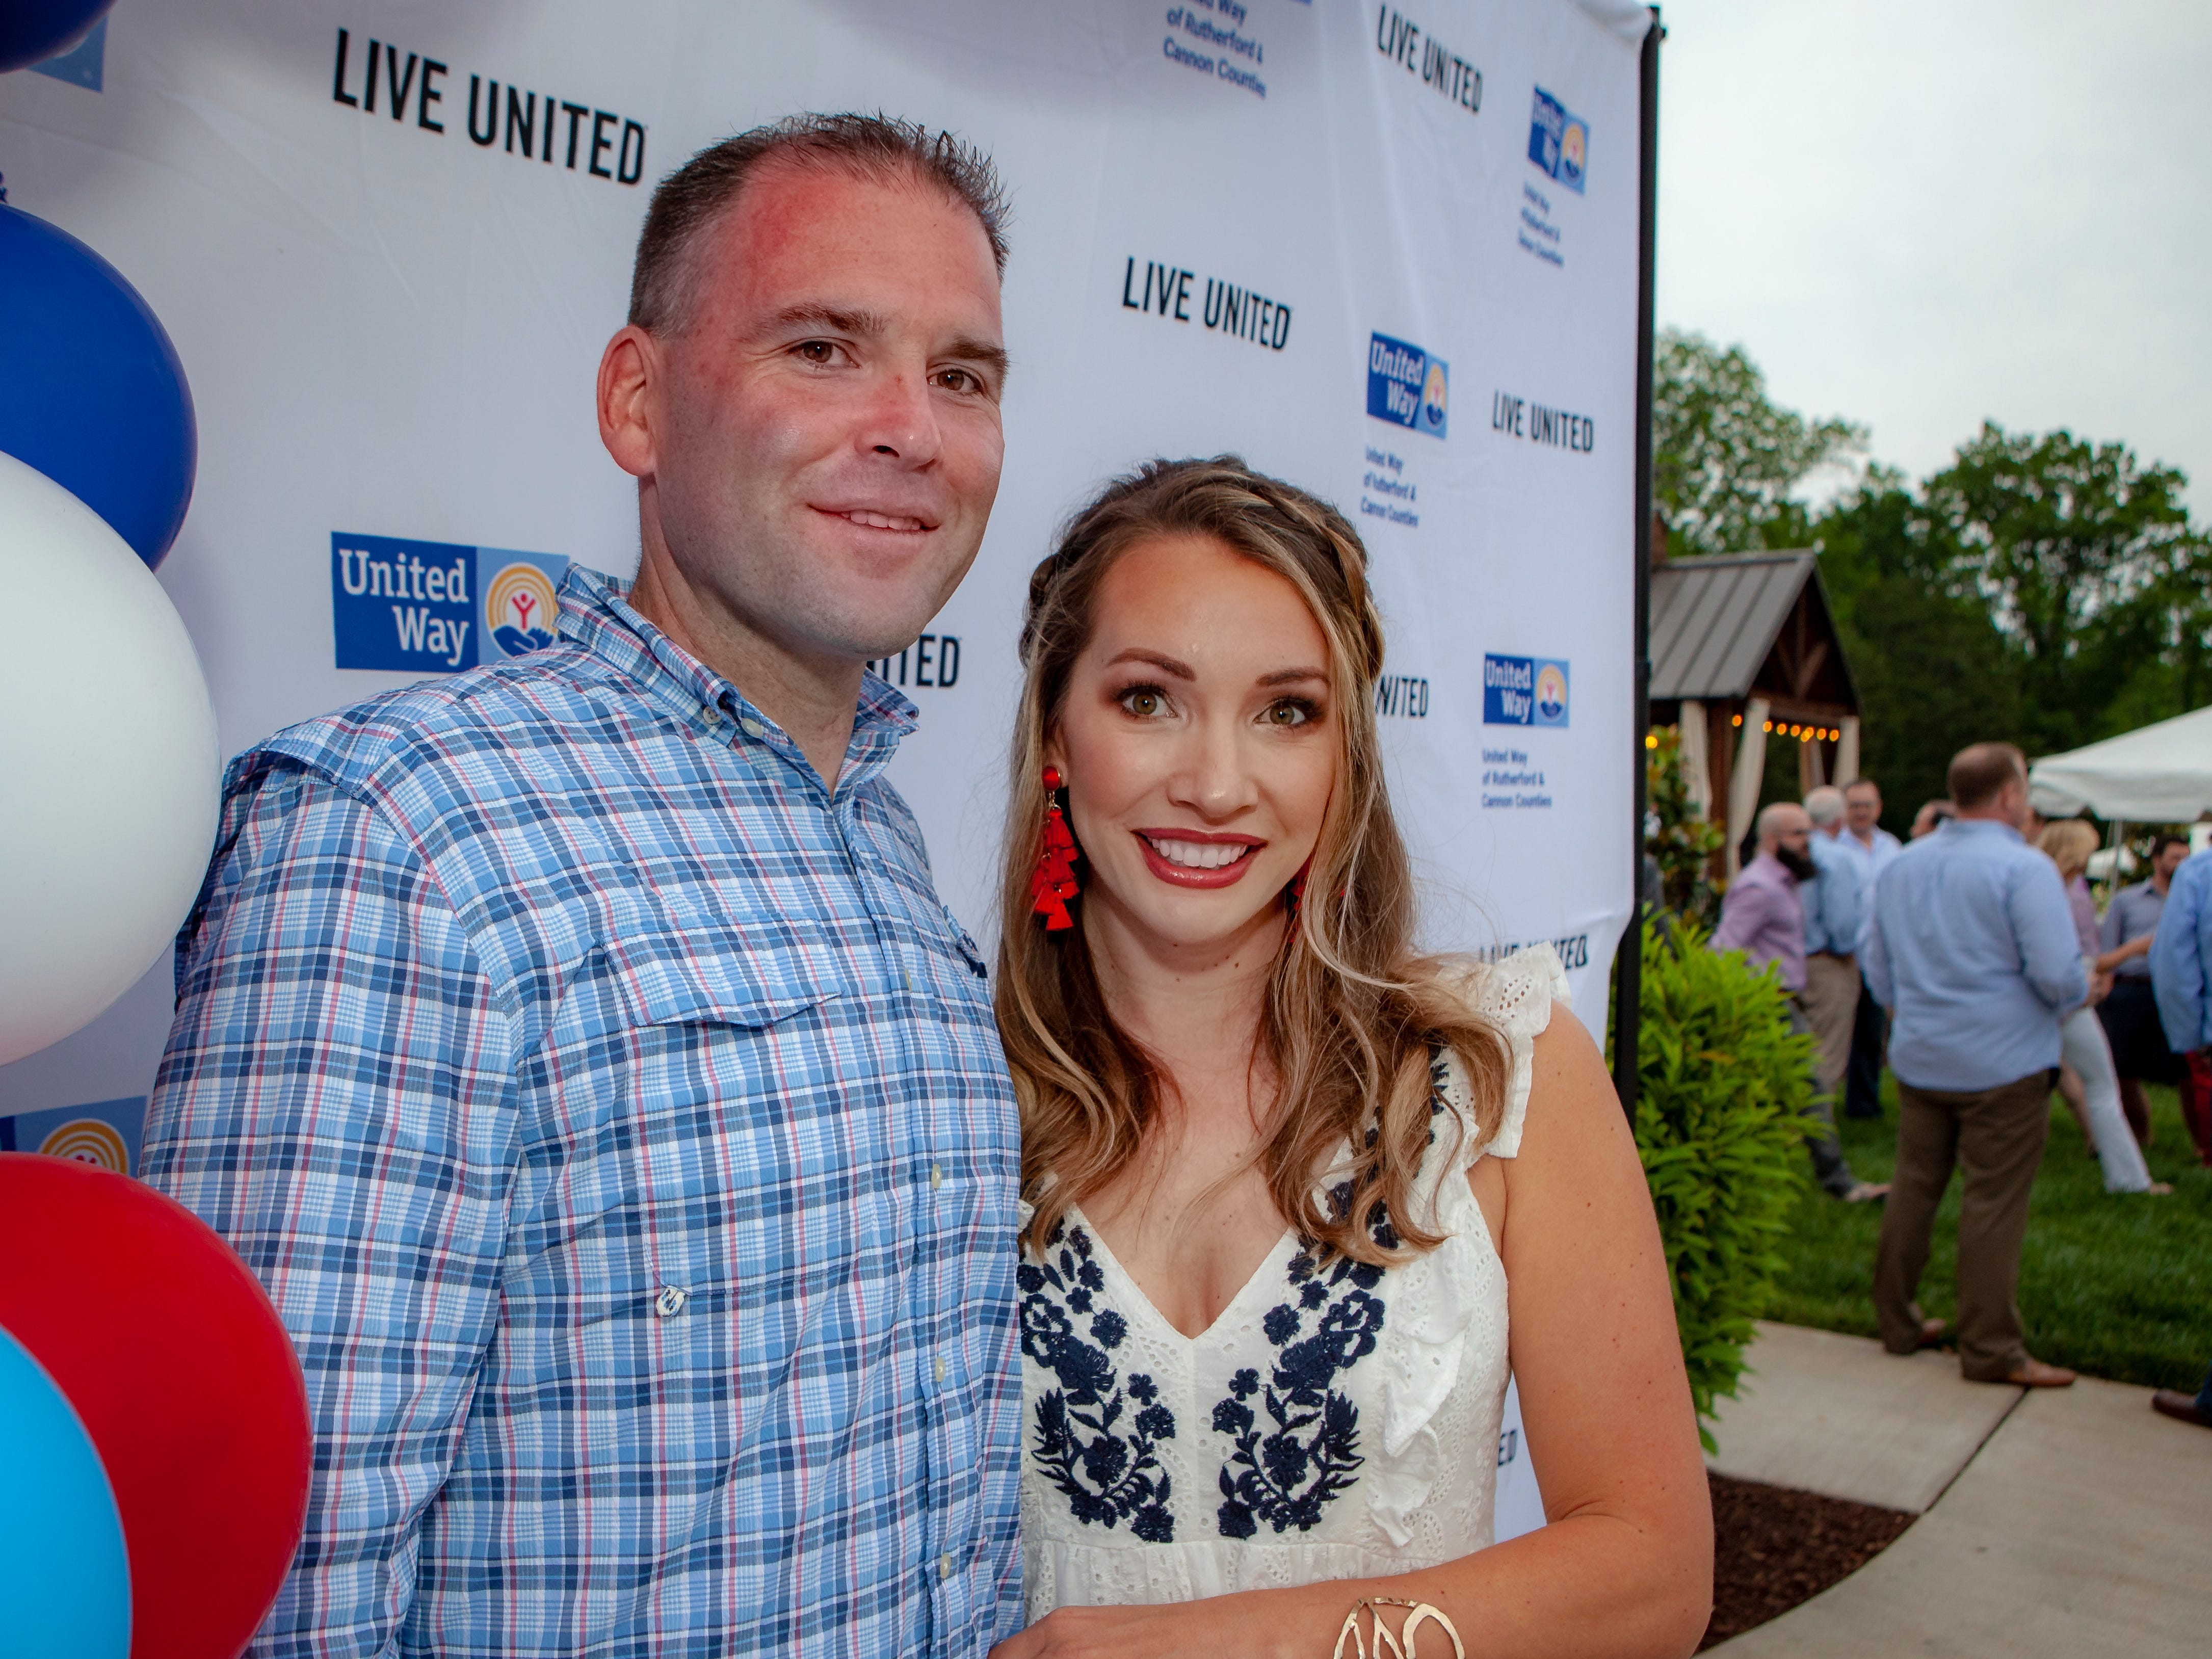 Jimmy and Nikkole Aho opened their home for guests to enjoy a Cajun feast under the stars at United Way's Red, White and Bayou, held Friday, May 10, 2019.